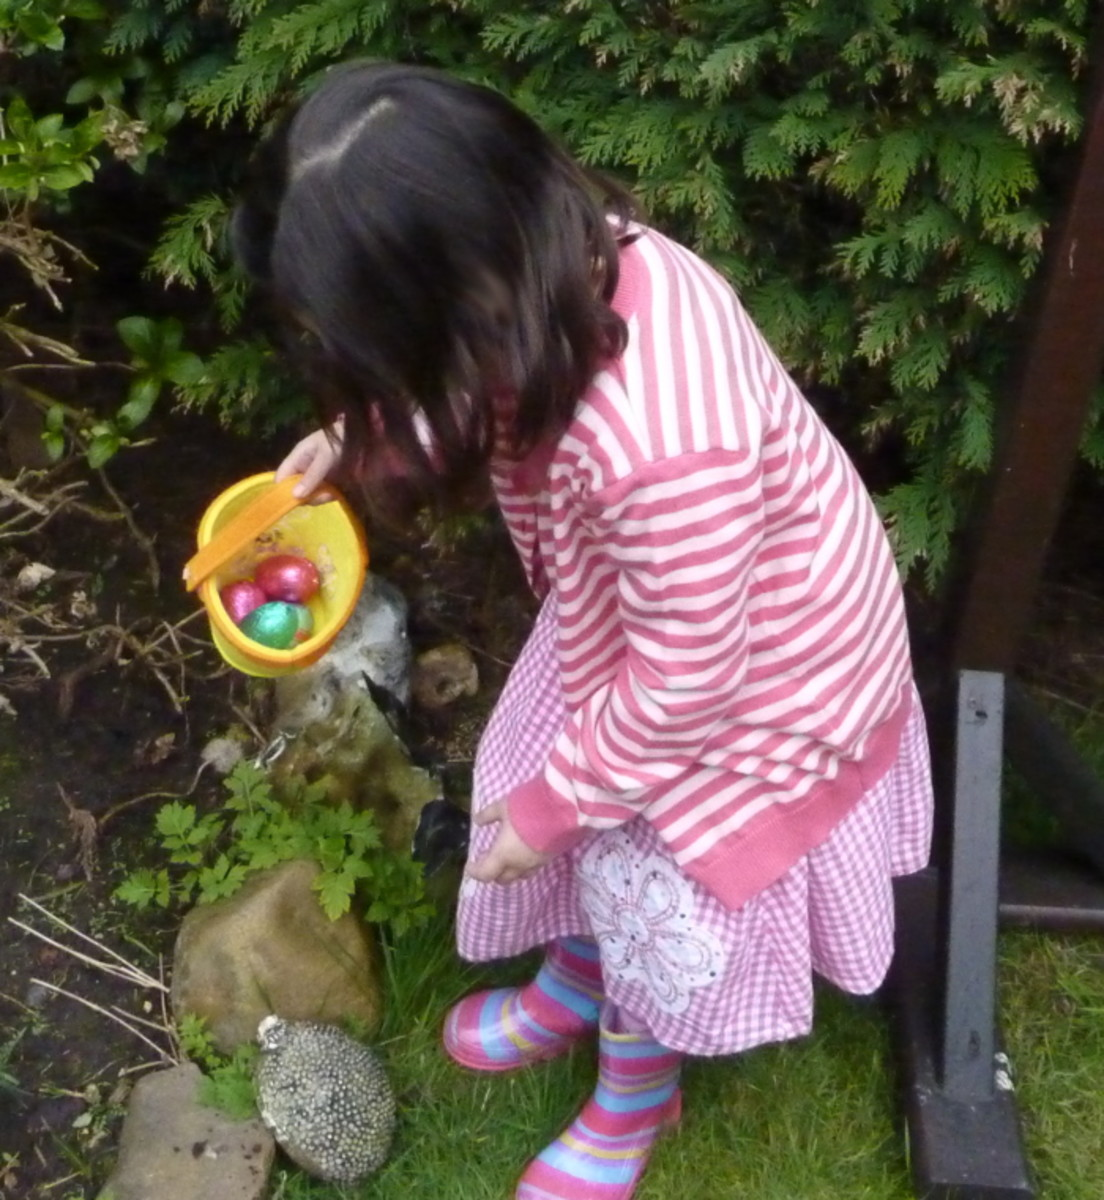 Children can have fun searching for eggs that the Easter bunny left with an egg hunt.